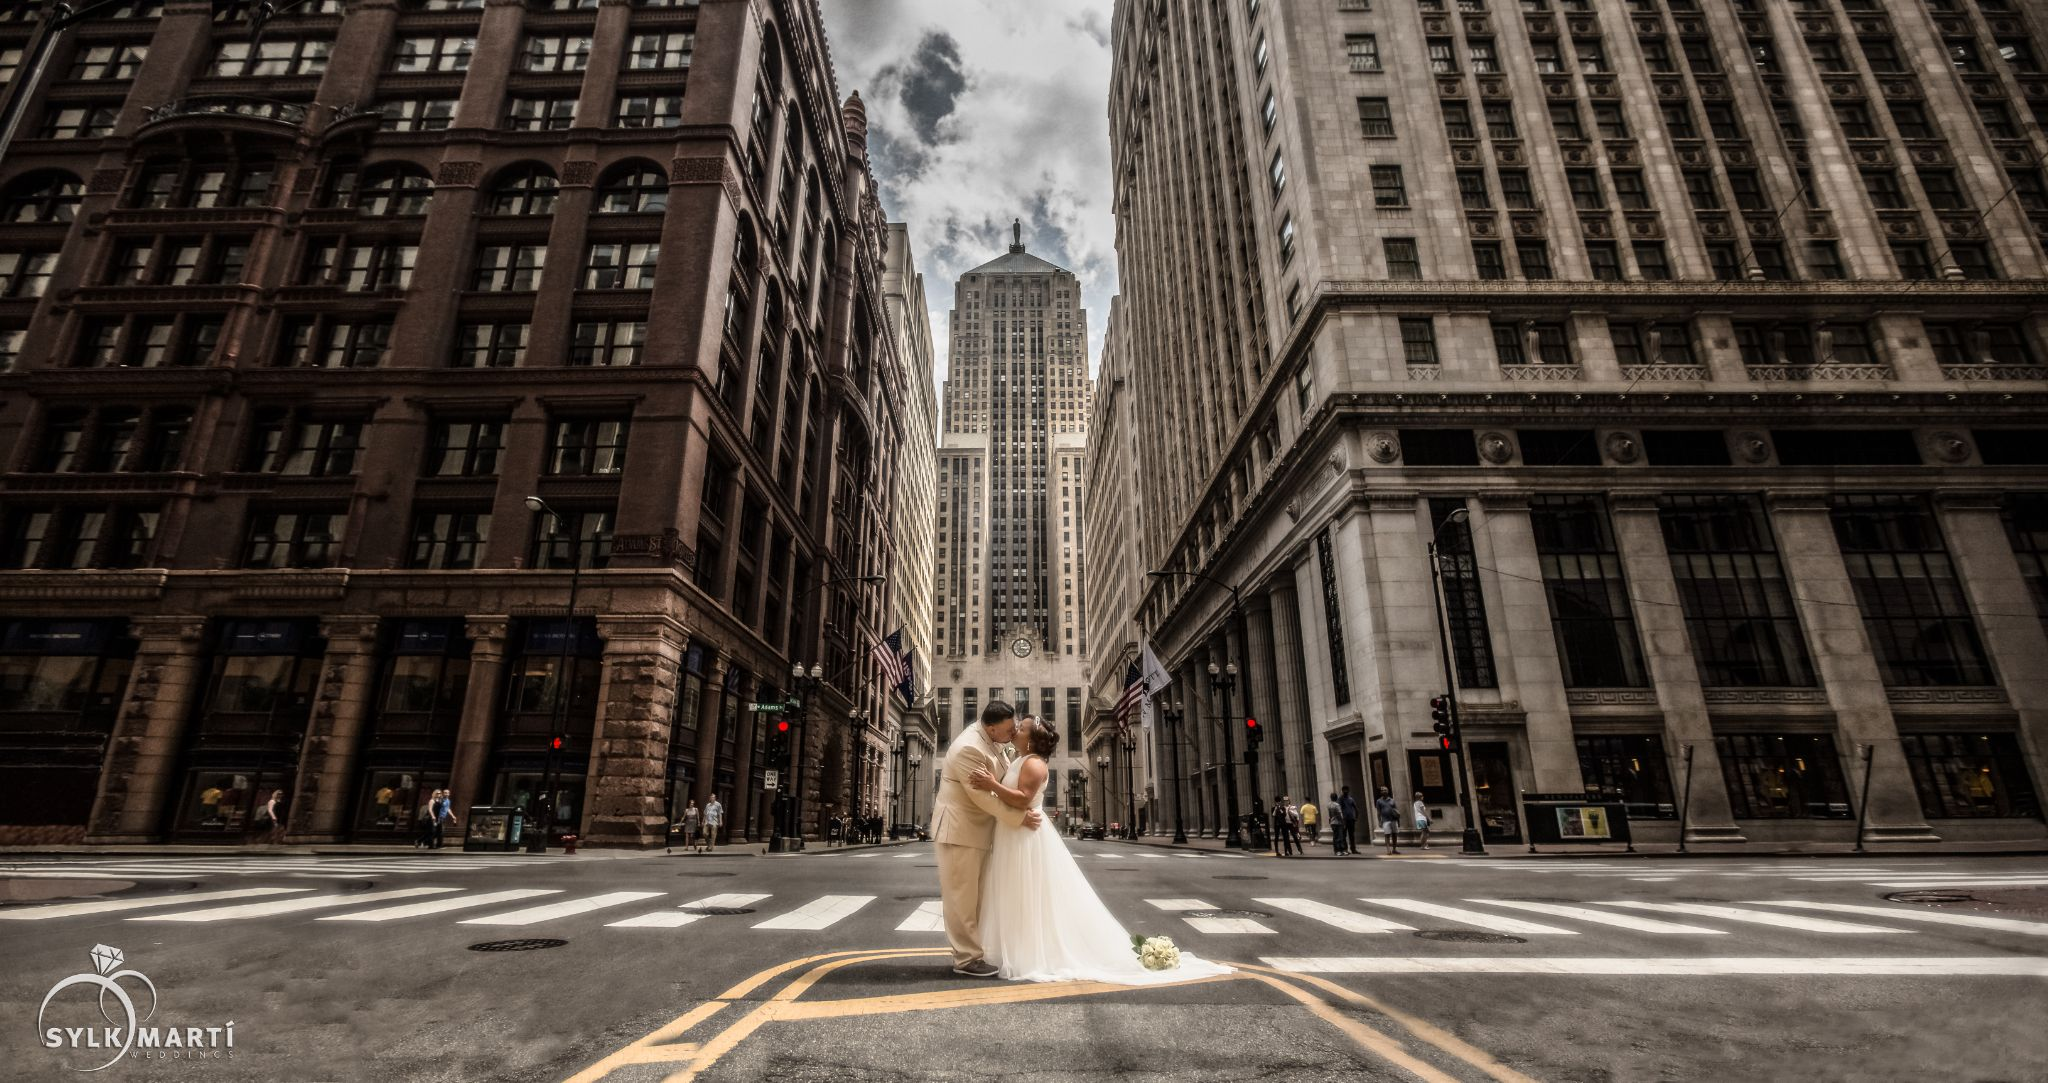 The first look and kiss... by sylkphotography